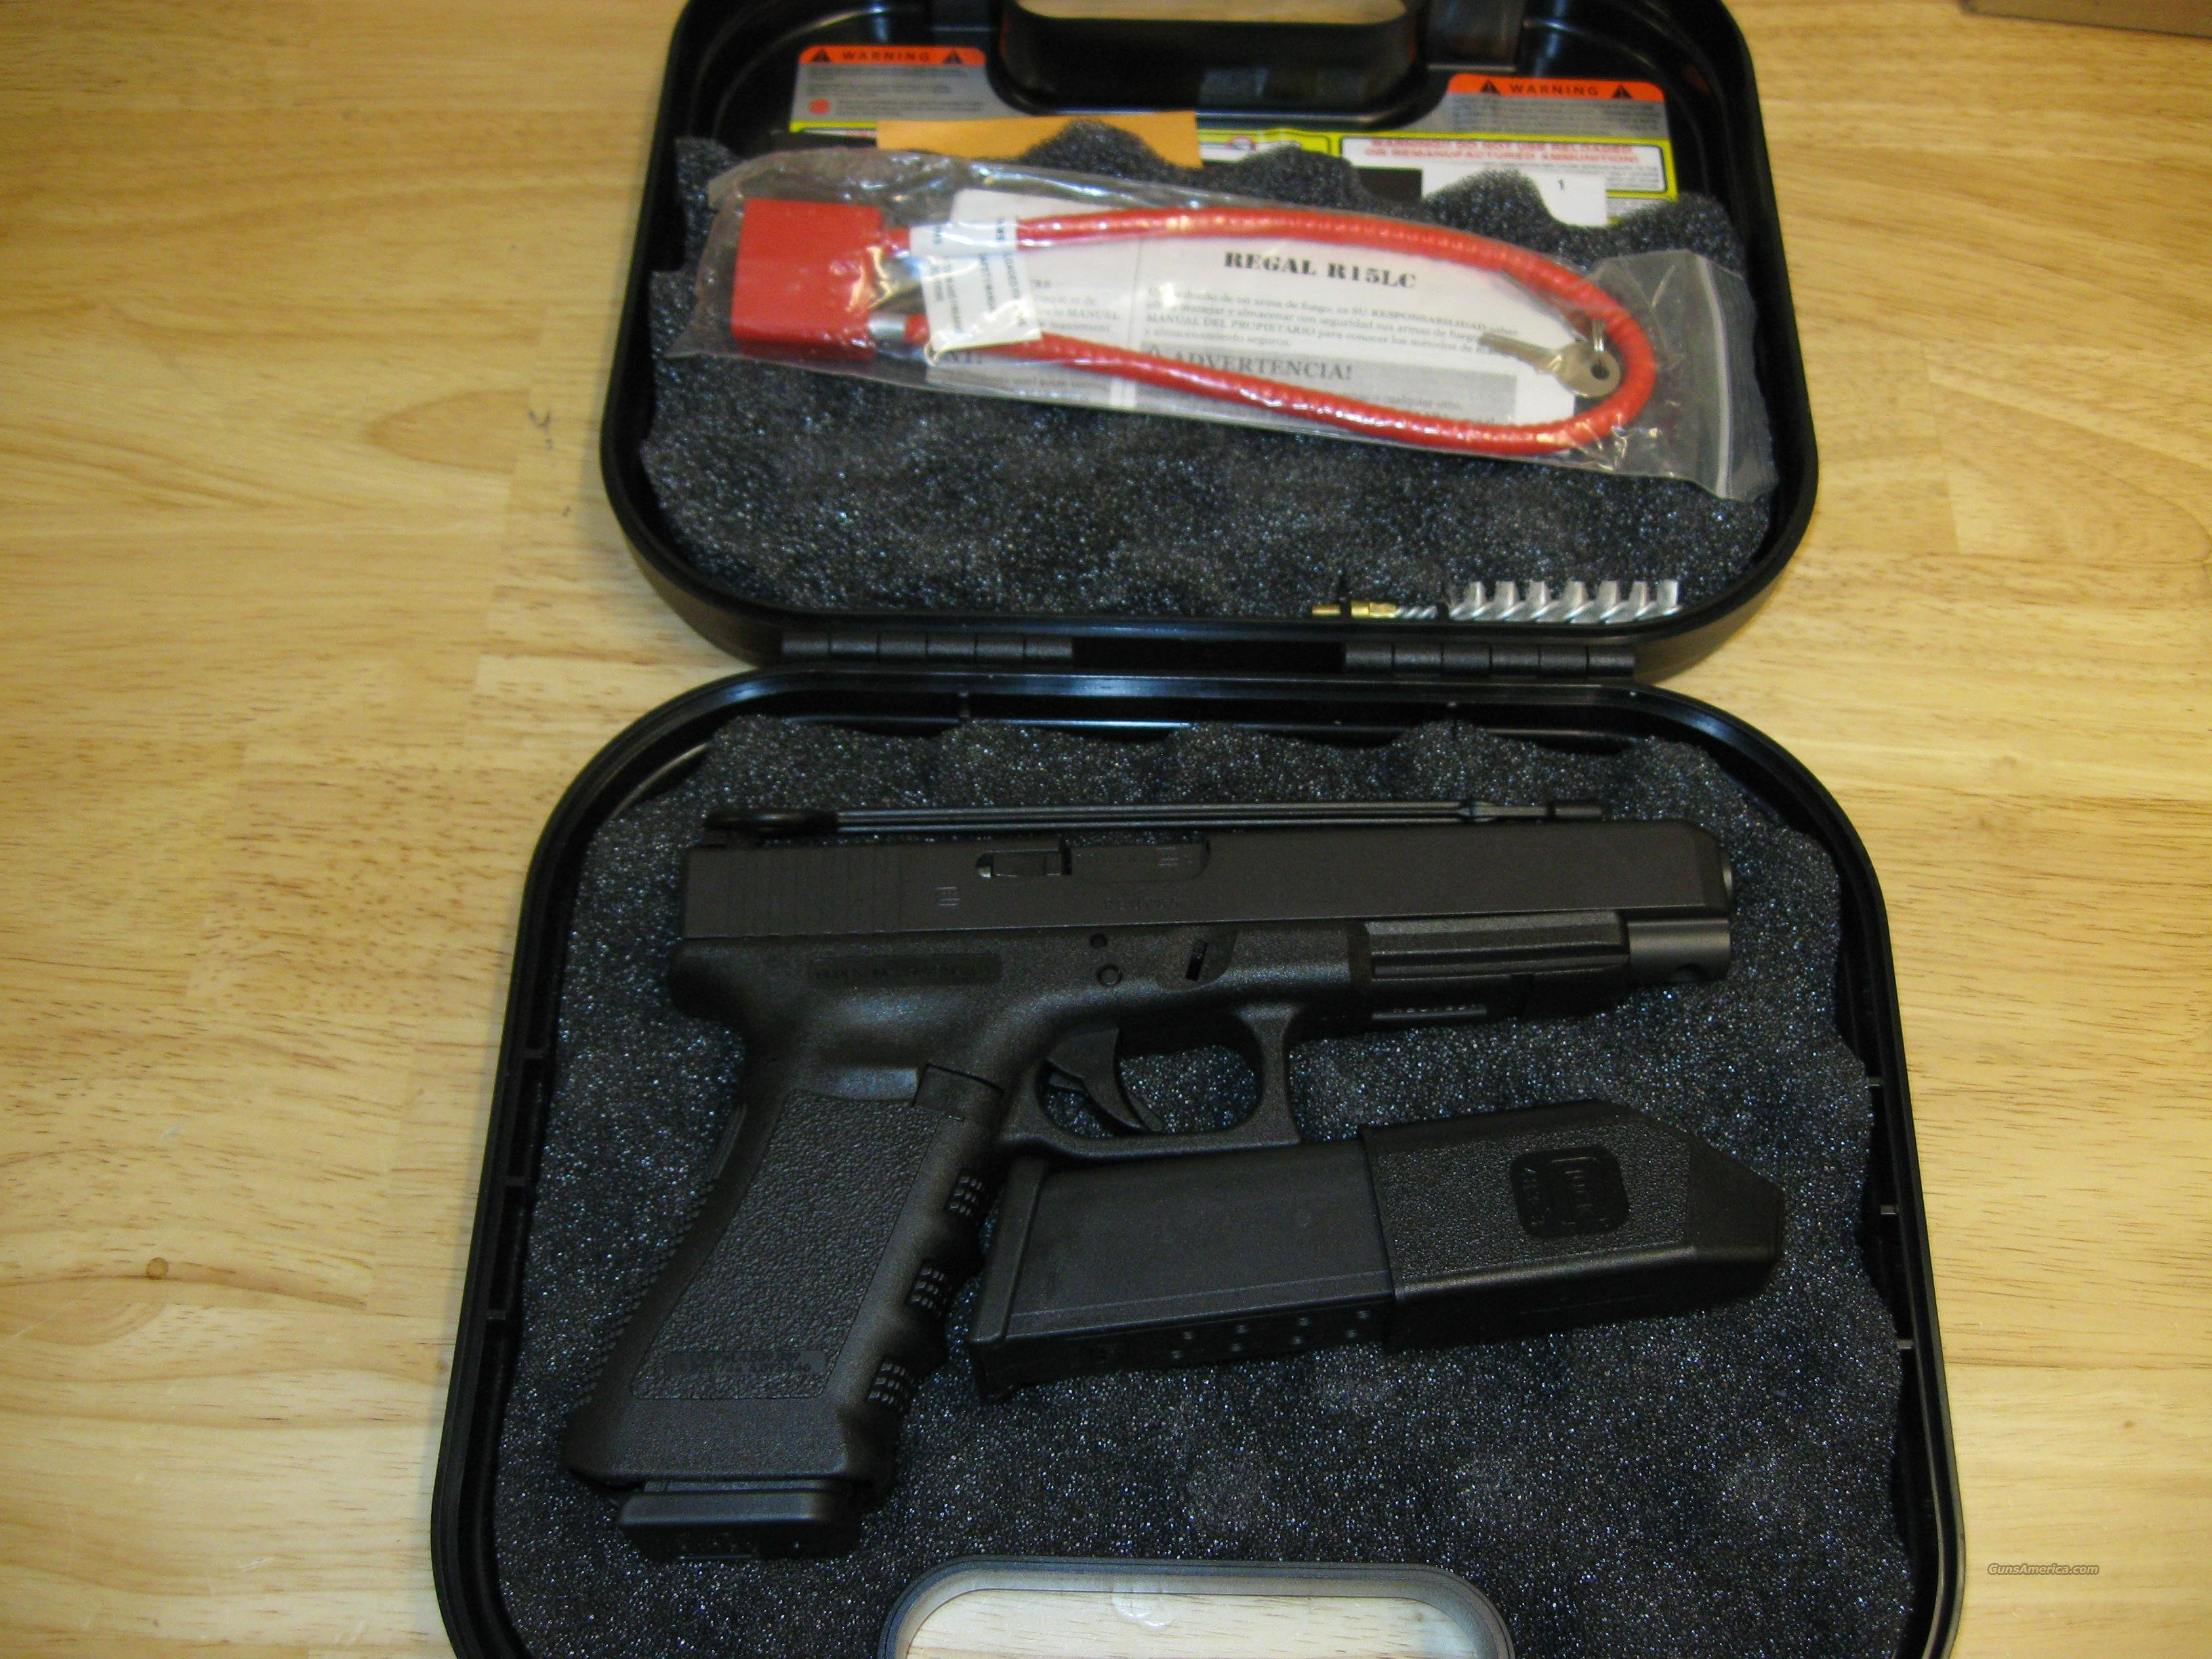 Glock 35 Competition Pistol PI3530103, 40 S&W, 5.32 in, Polymer Grip, Black Finish, Adjustable Sights, 15 Rd  Guns > Pistols > Glock Pistols > 35